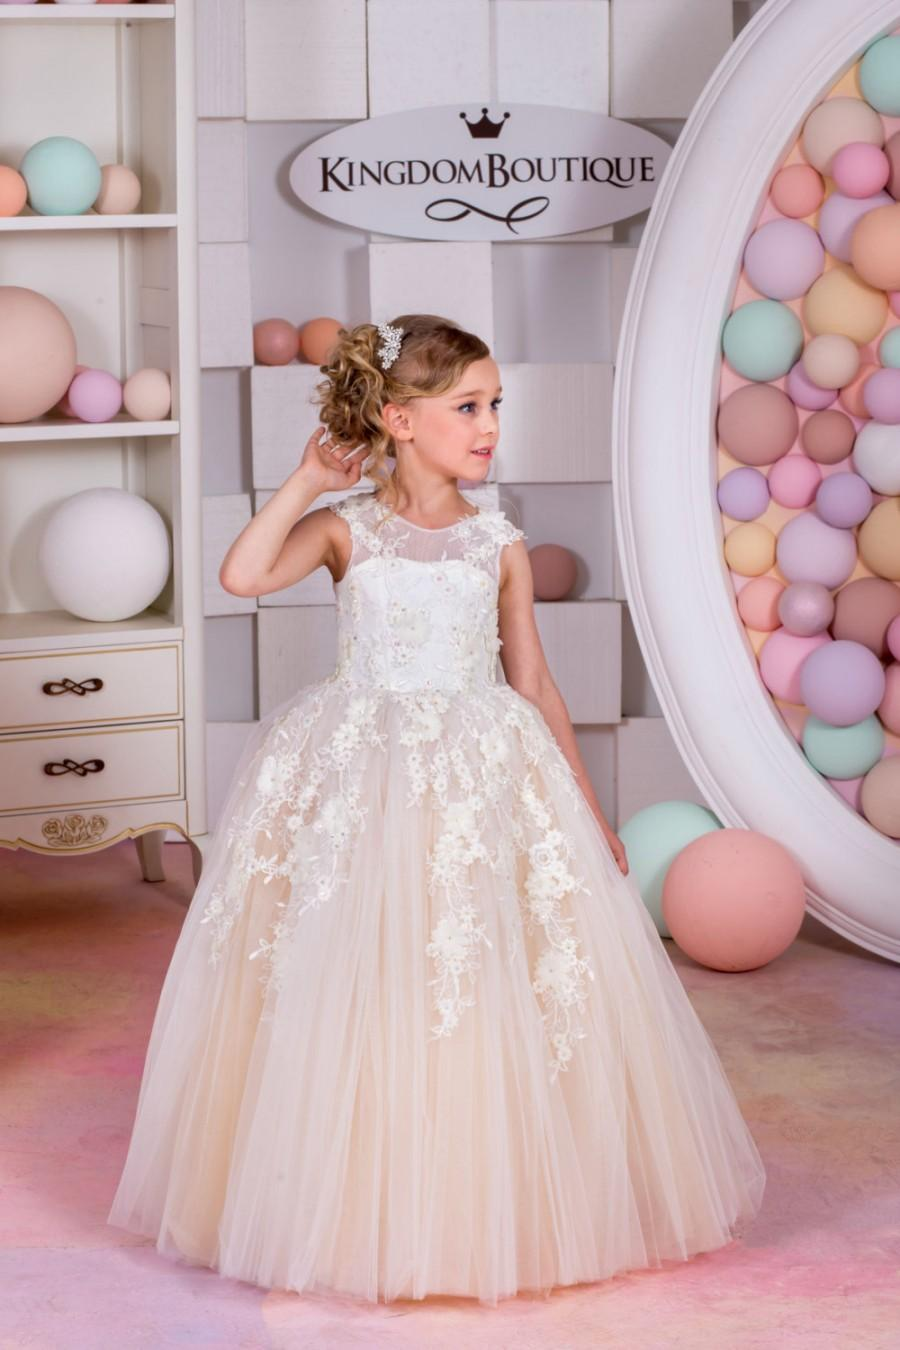 Düğün - Ivory and Blush Tulle Flower Girl Dress - Birthday Wedding Party Holiday Bridesmaid Ivory and Blush Tulle Flower Girl Dress 15-027